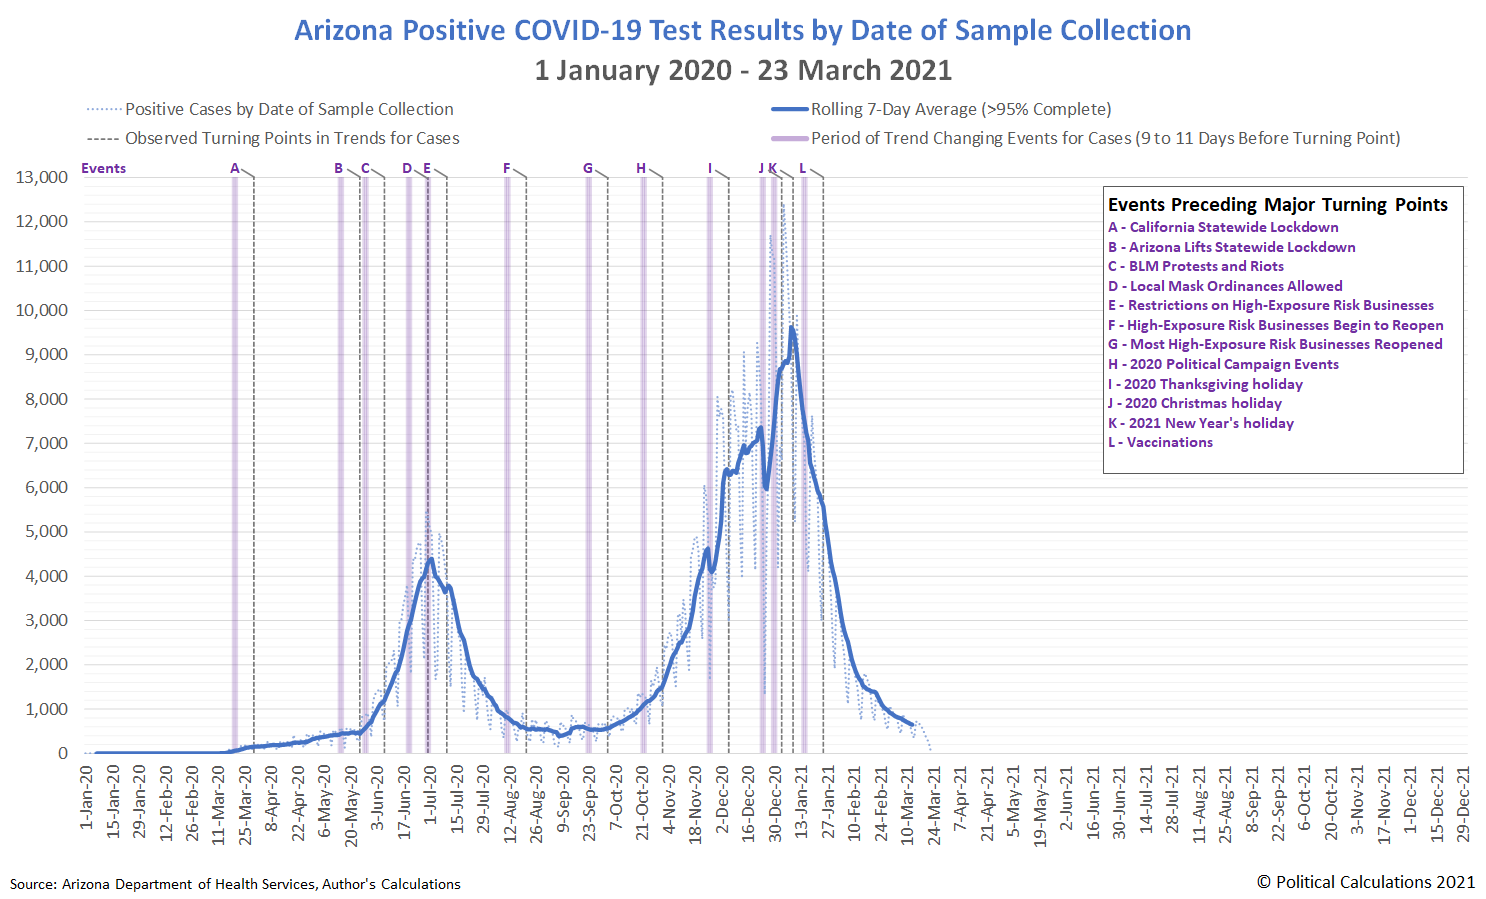 Arizona Positive COVID-19 Test Results by Date of Sample Collection, 1 January 2020 - 23 March 2021